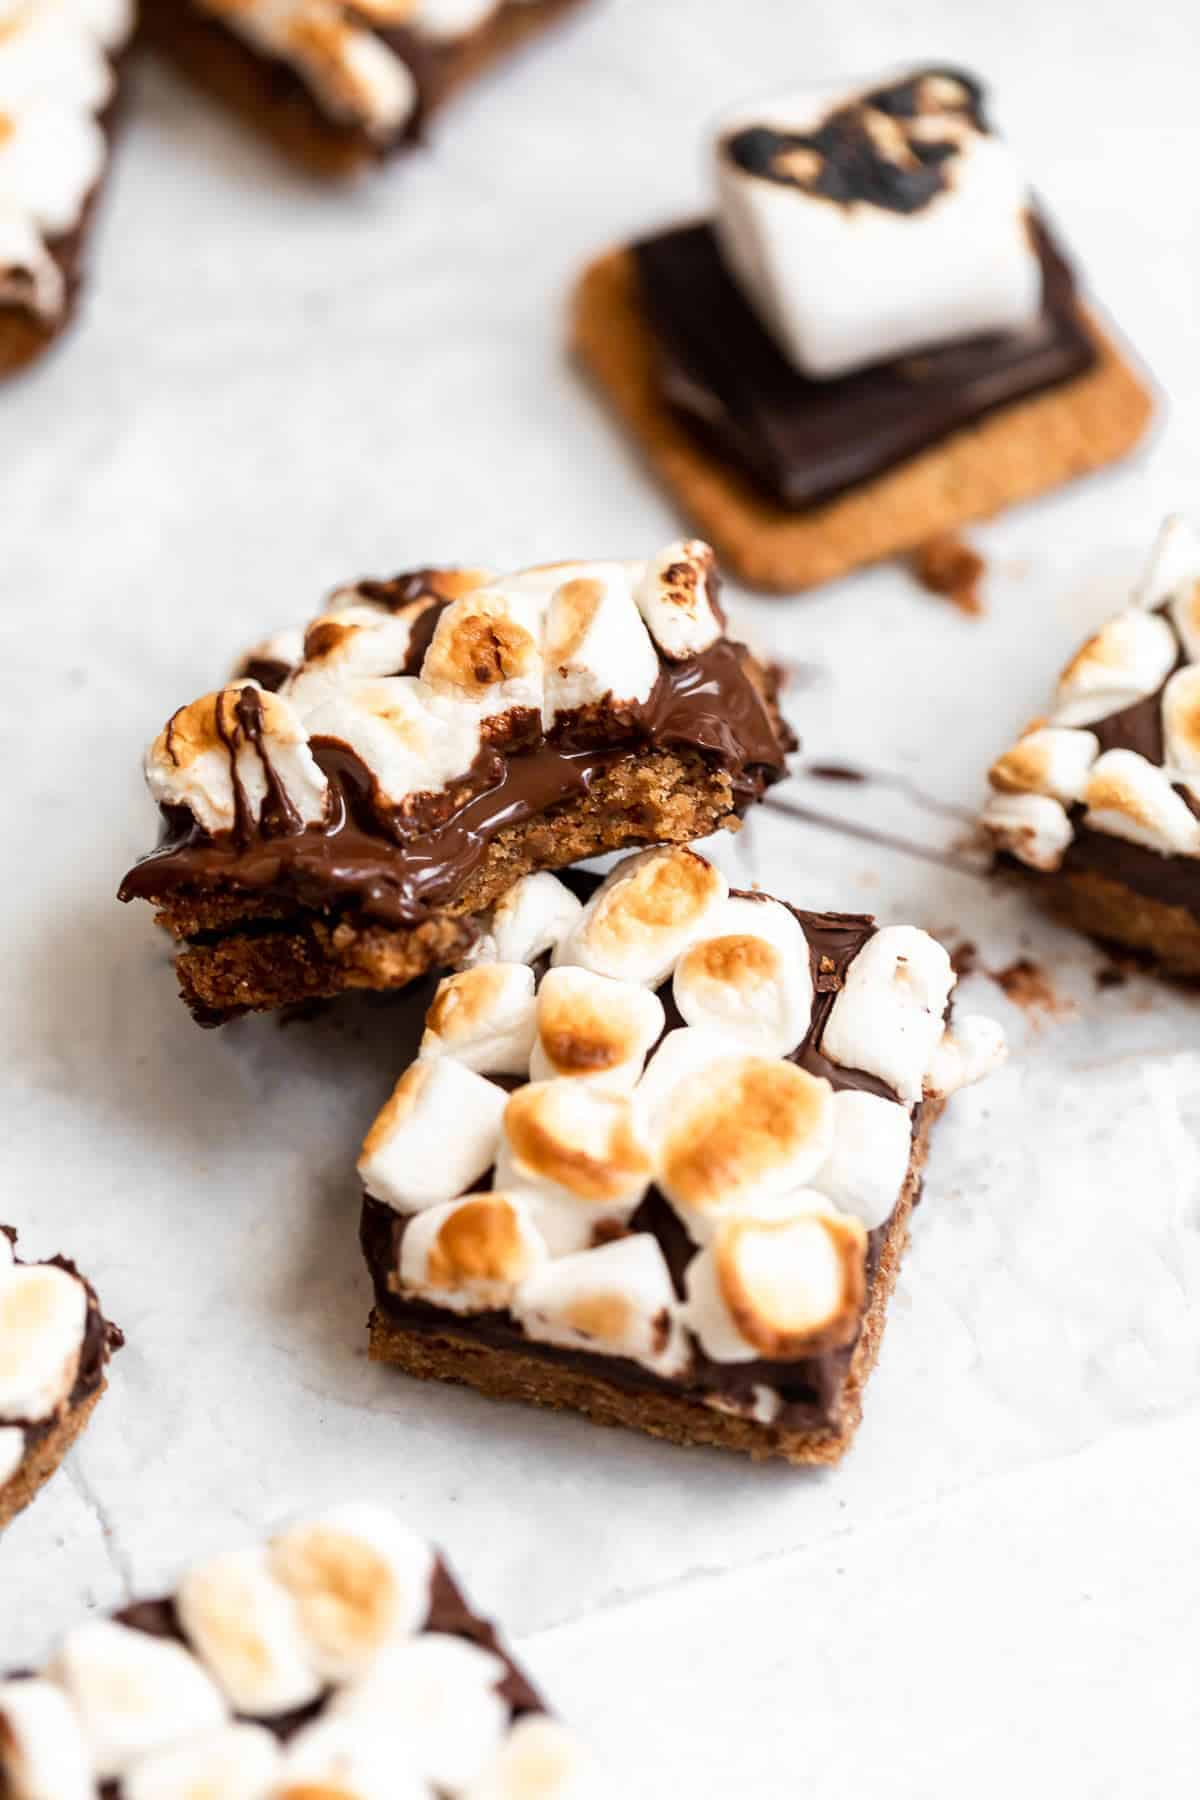 Stack of vegan smores bars to show the melted chocolate.